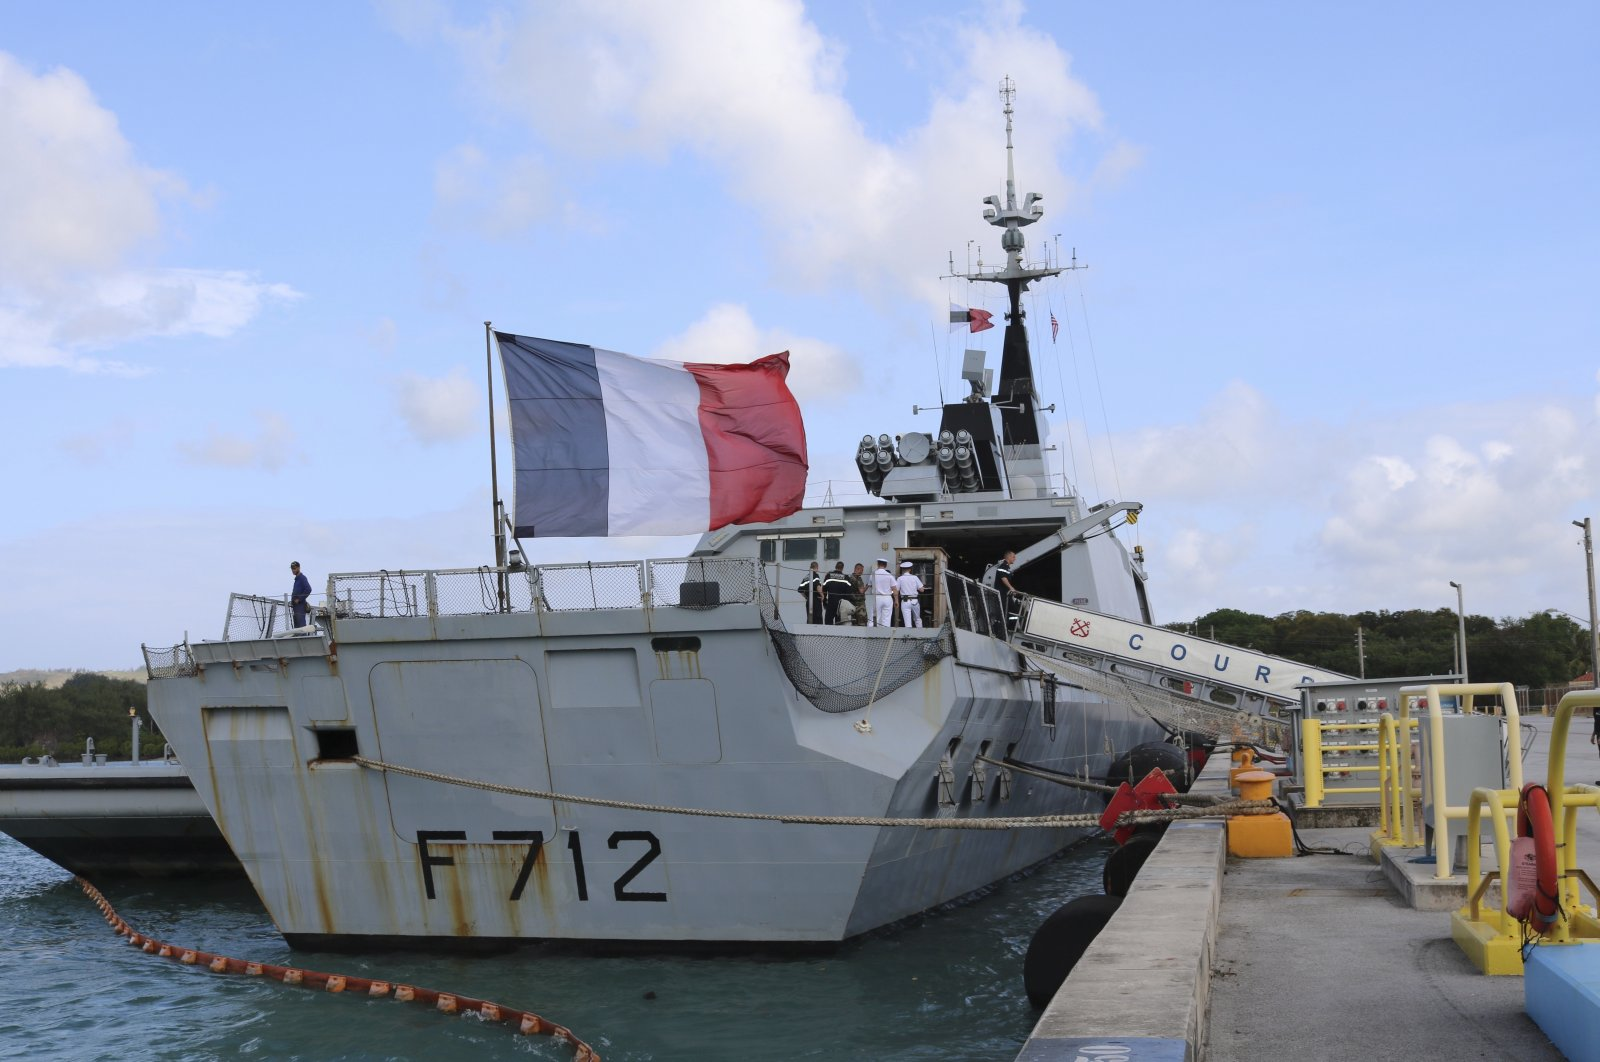 The French stealth frigate Courbet is docked at Naval Base Guam, near Hagatna, Guam on May 11, 2017. (AP File Photo)